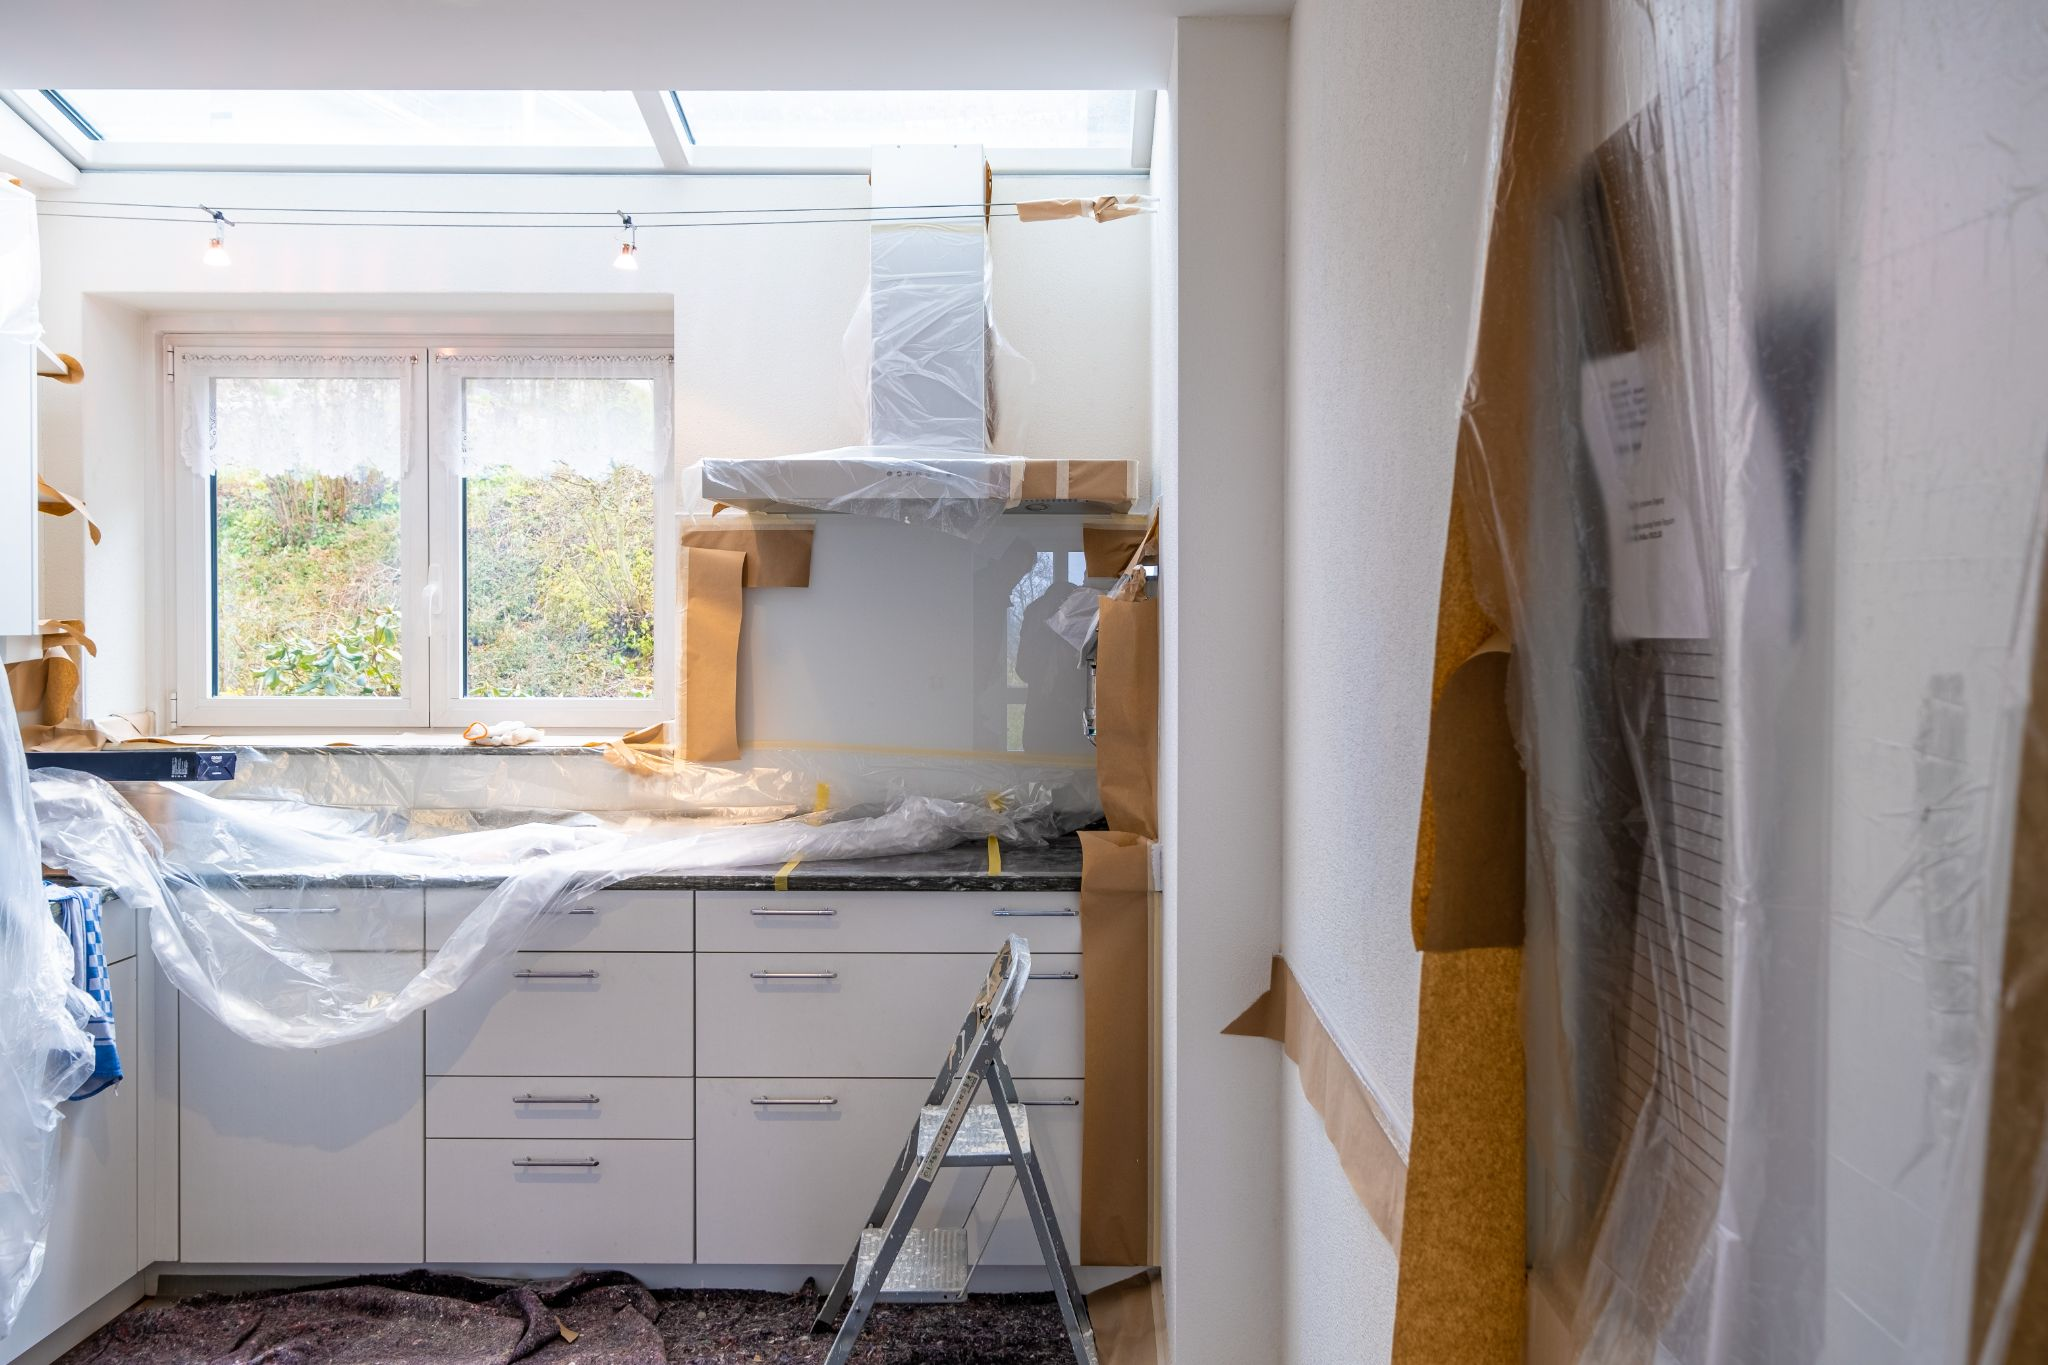 Financing a kitchen remodel